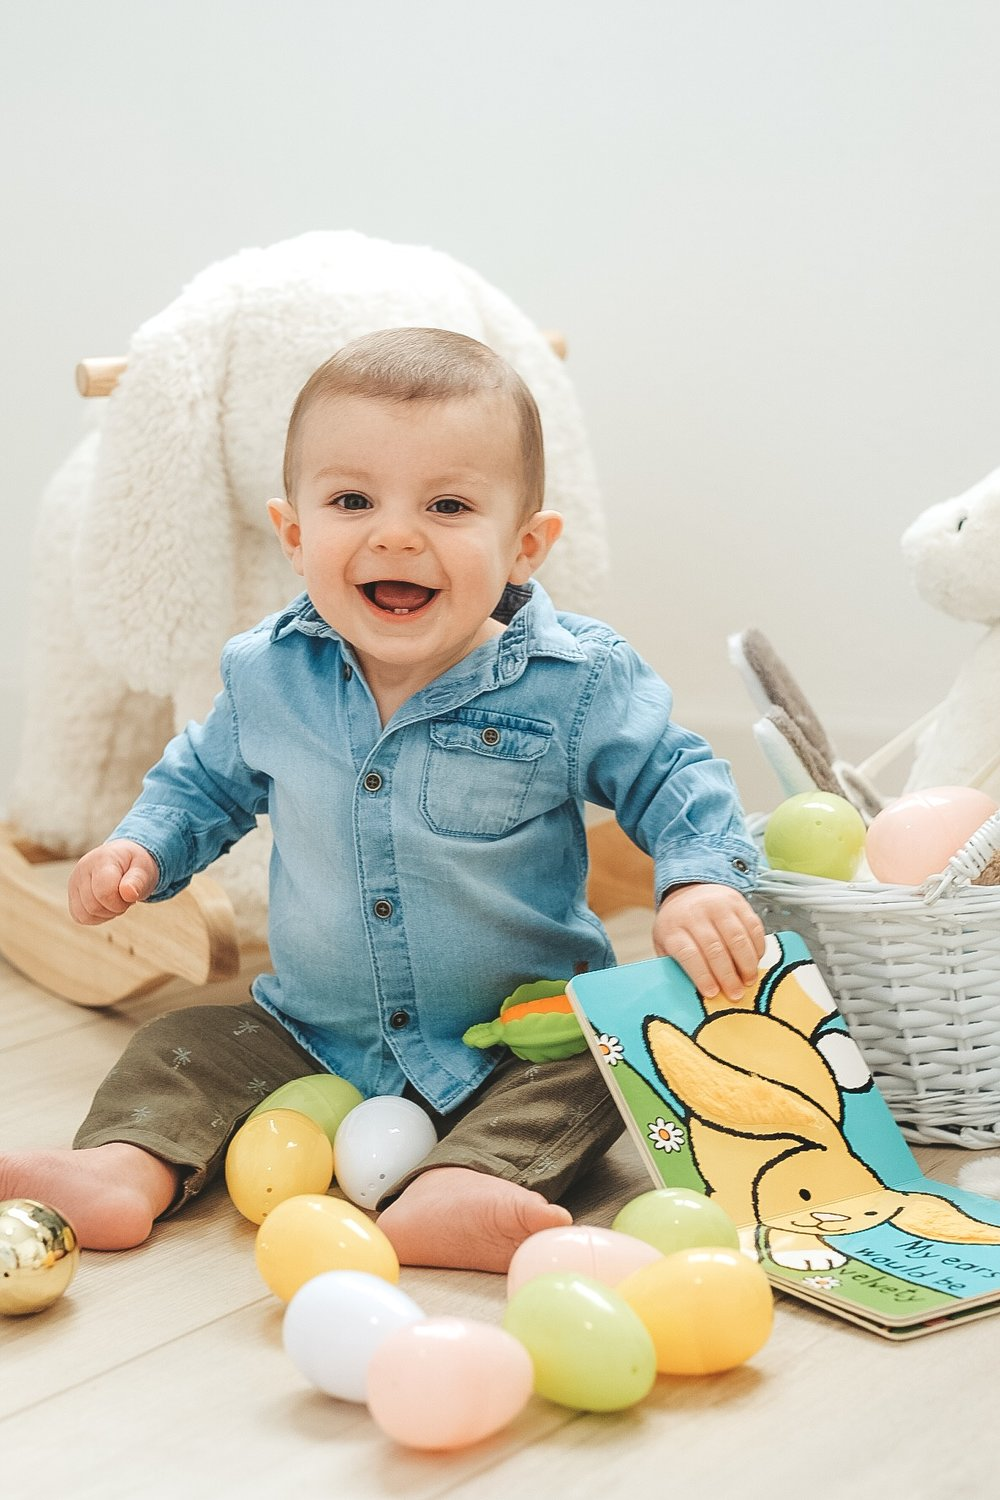 Easter basket ideas for children under 1.  Baby Easter basket ideas. Little boy Easter outfit idea.